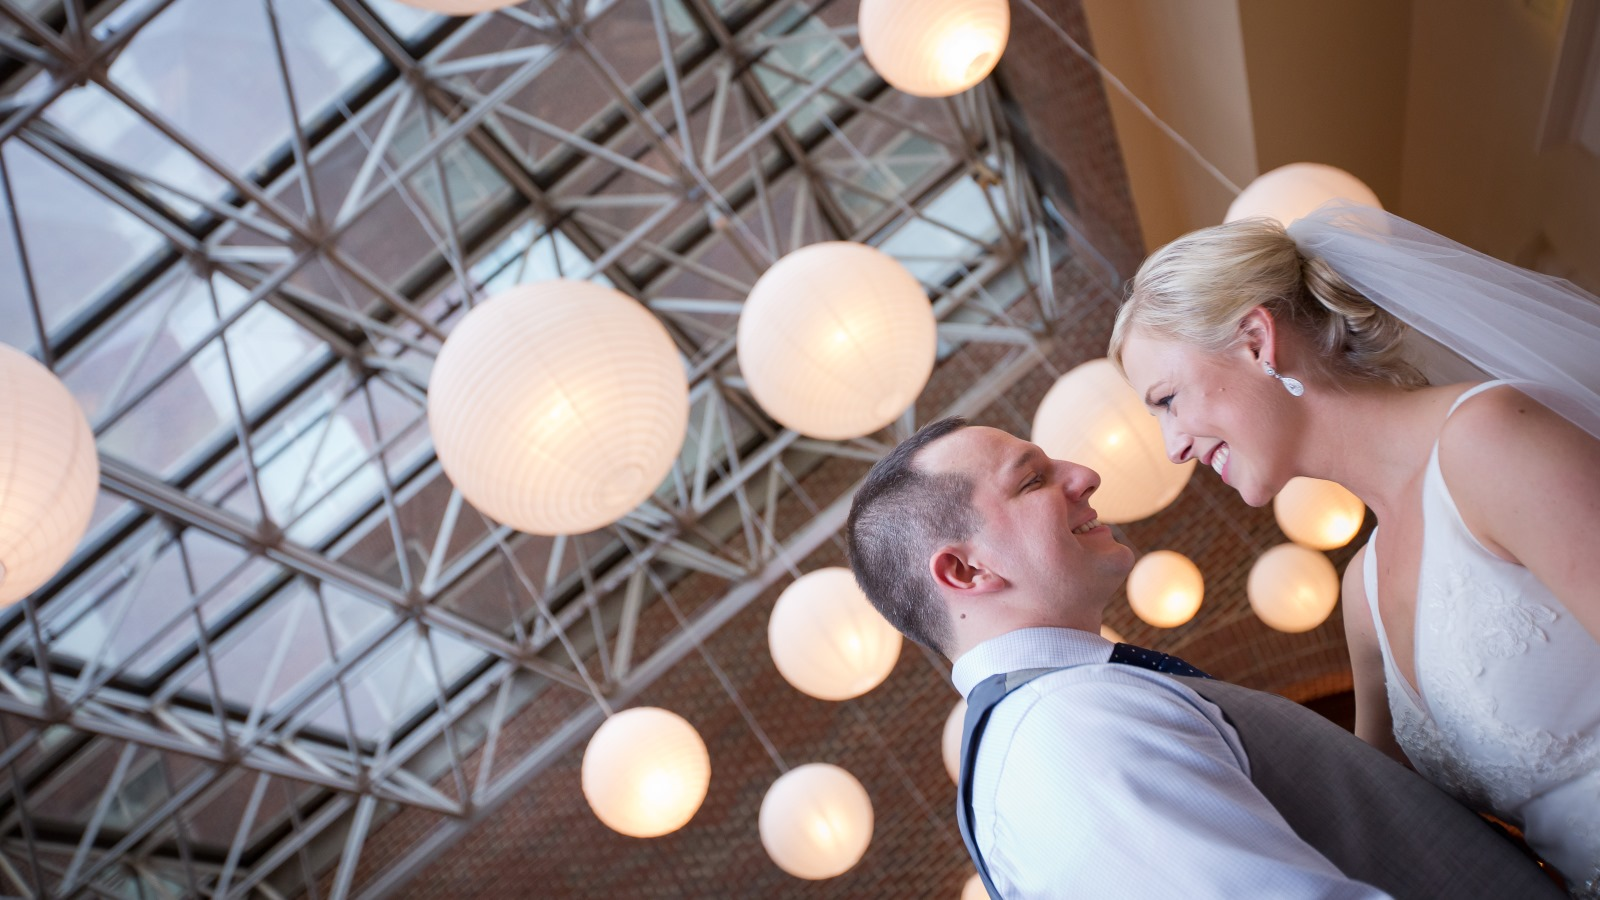 Raleigh Wedding Venues - Sheraton Raleigh Hotel